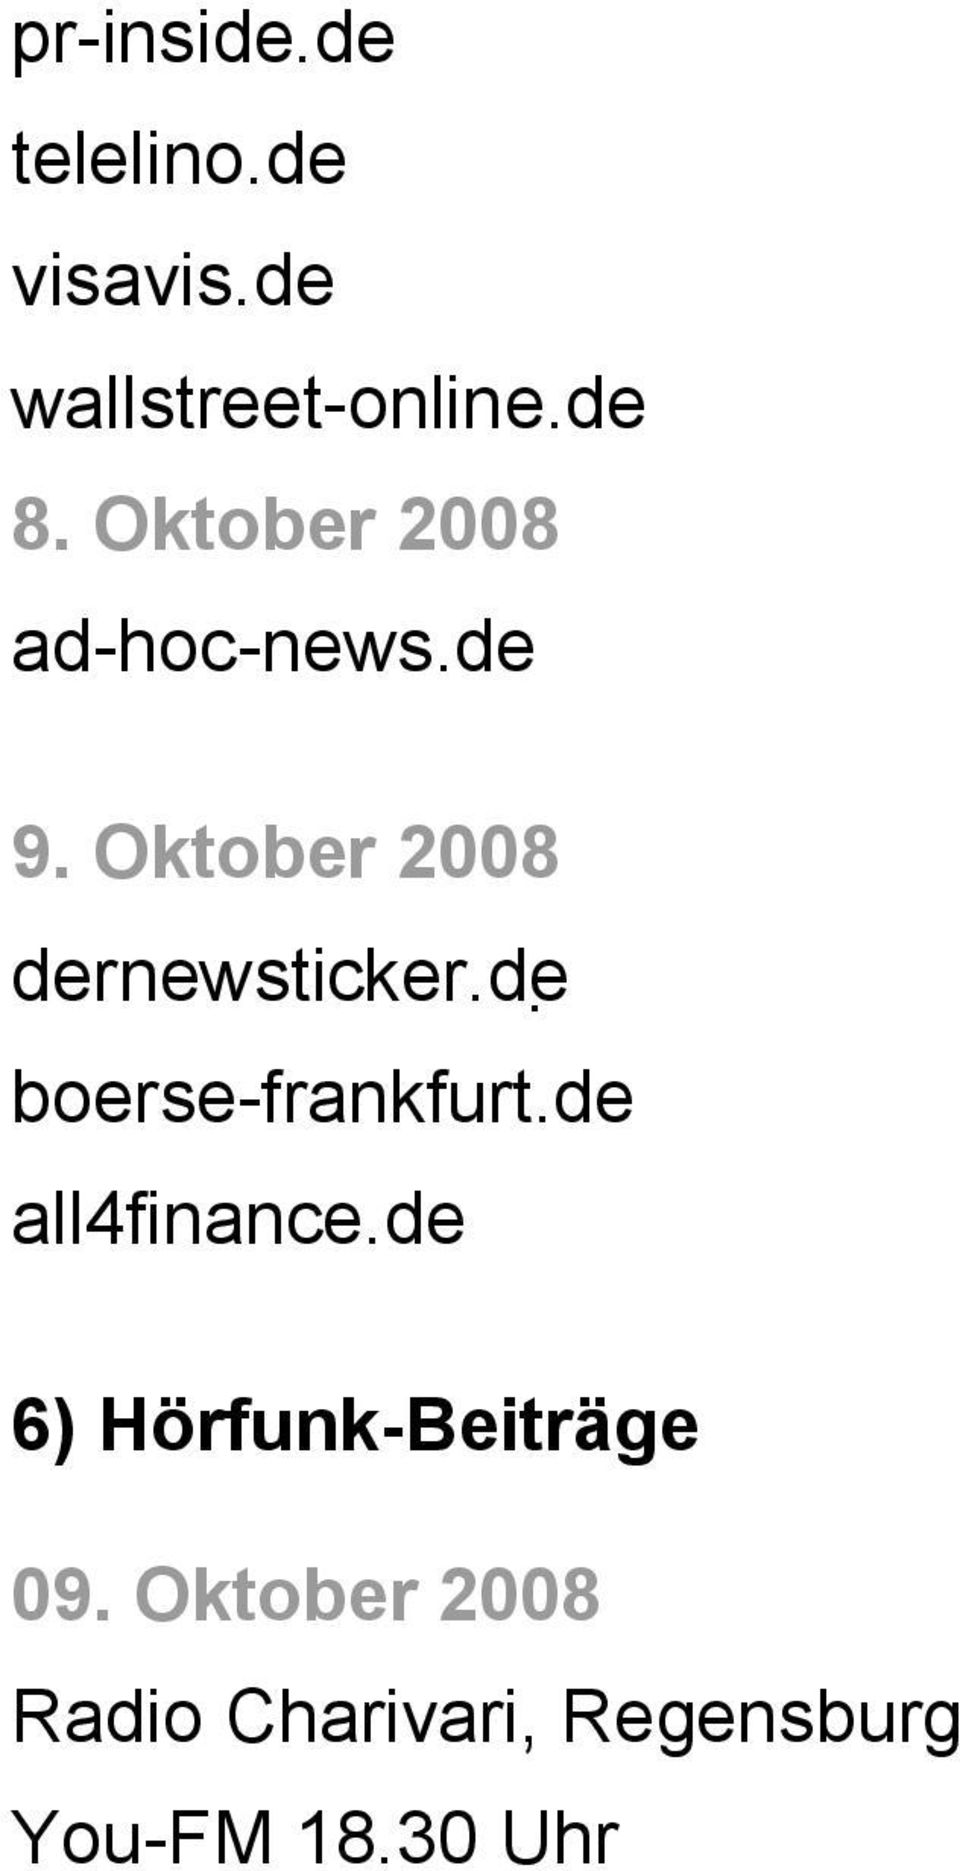 de boerse-frankfurt.de all4finance.